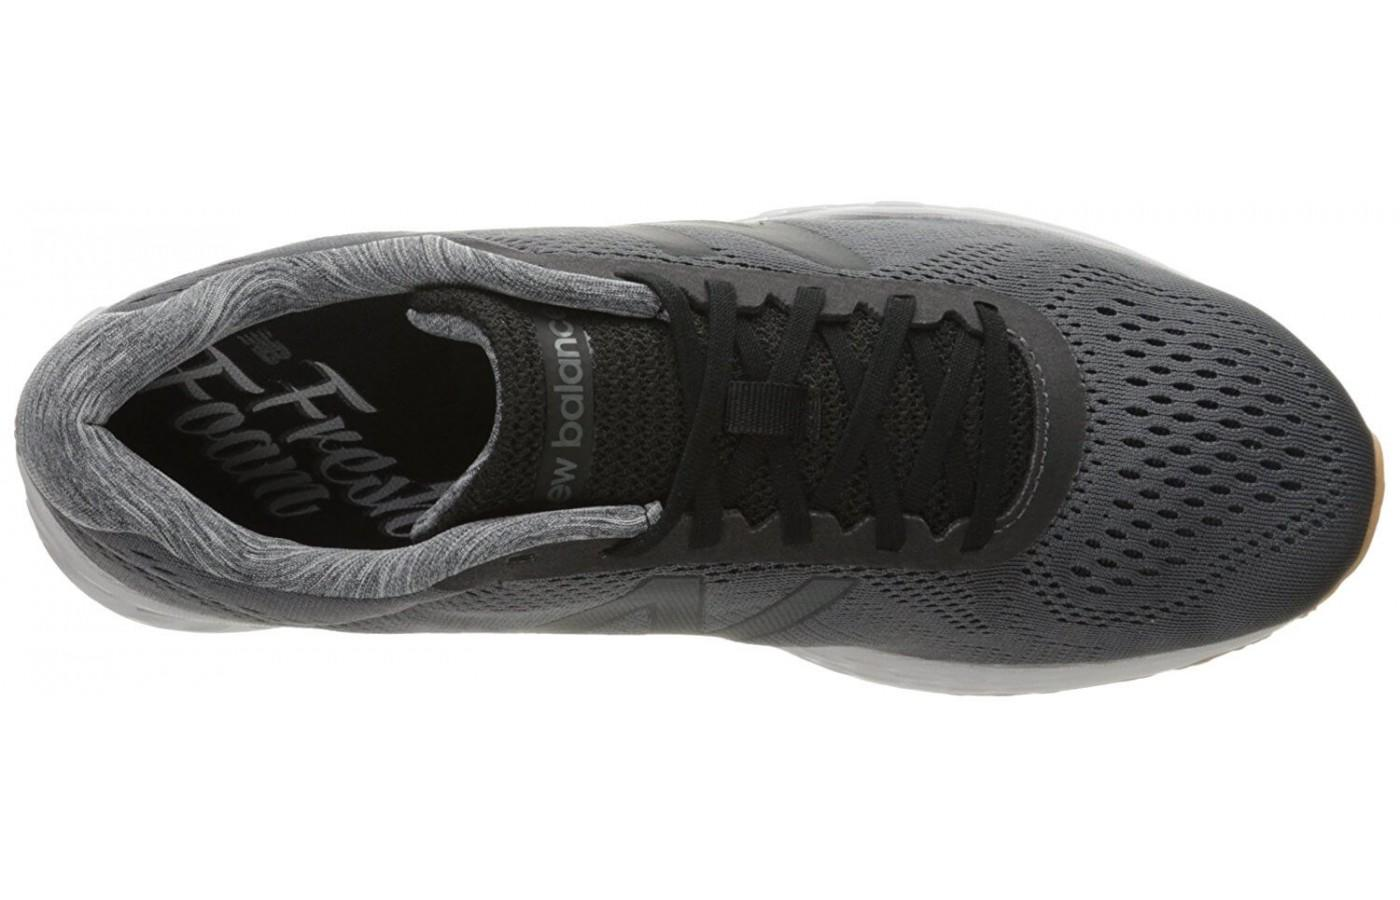 The upper features a breathable mesh.